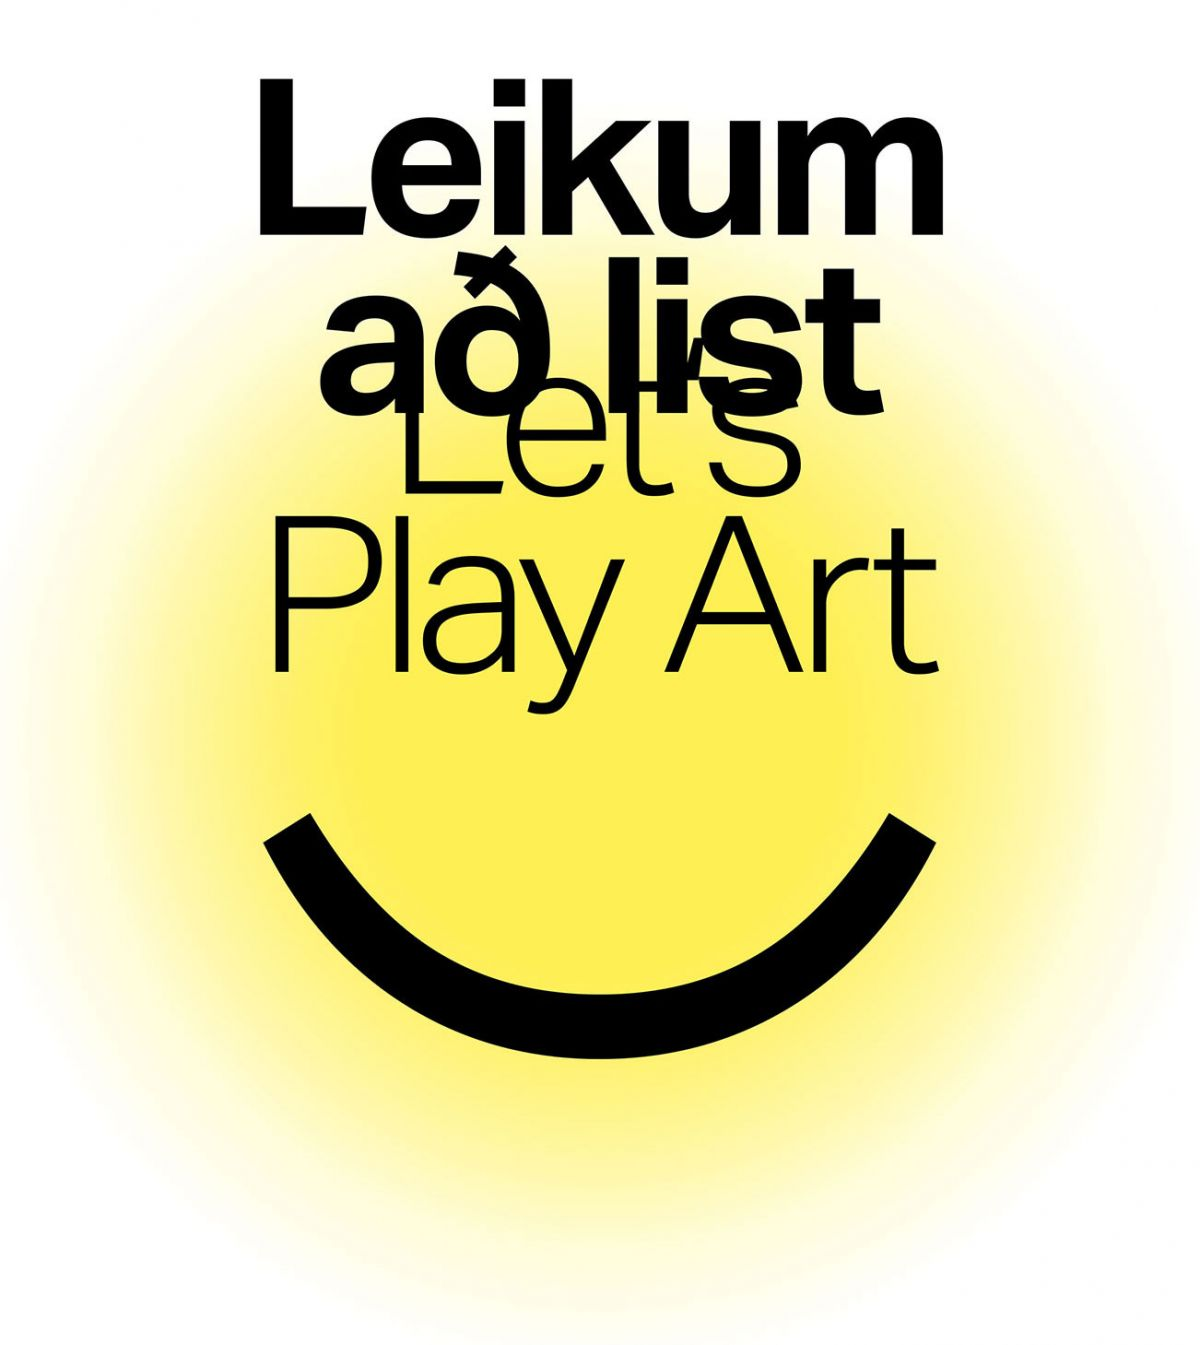 Let's Play Art: Family Program